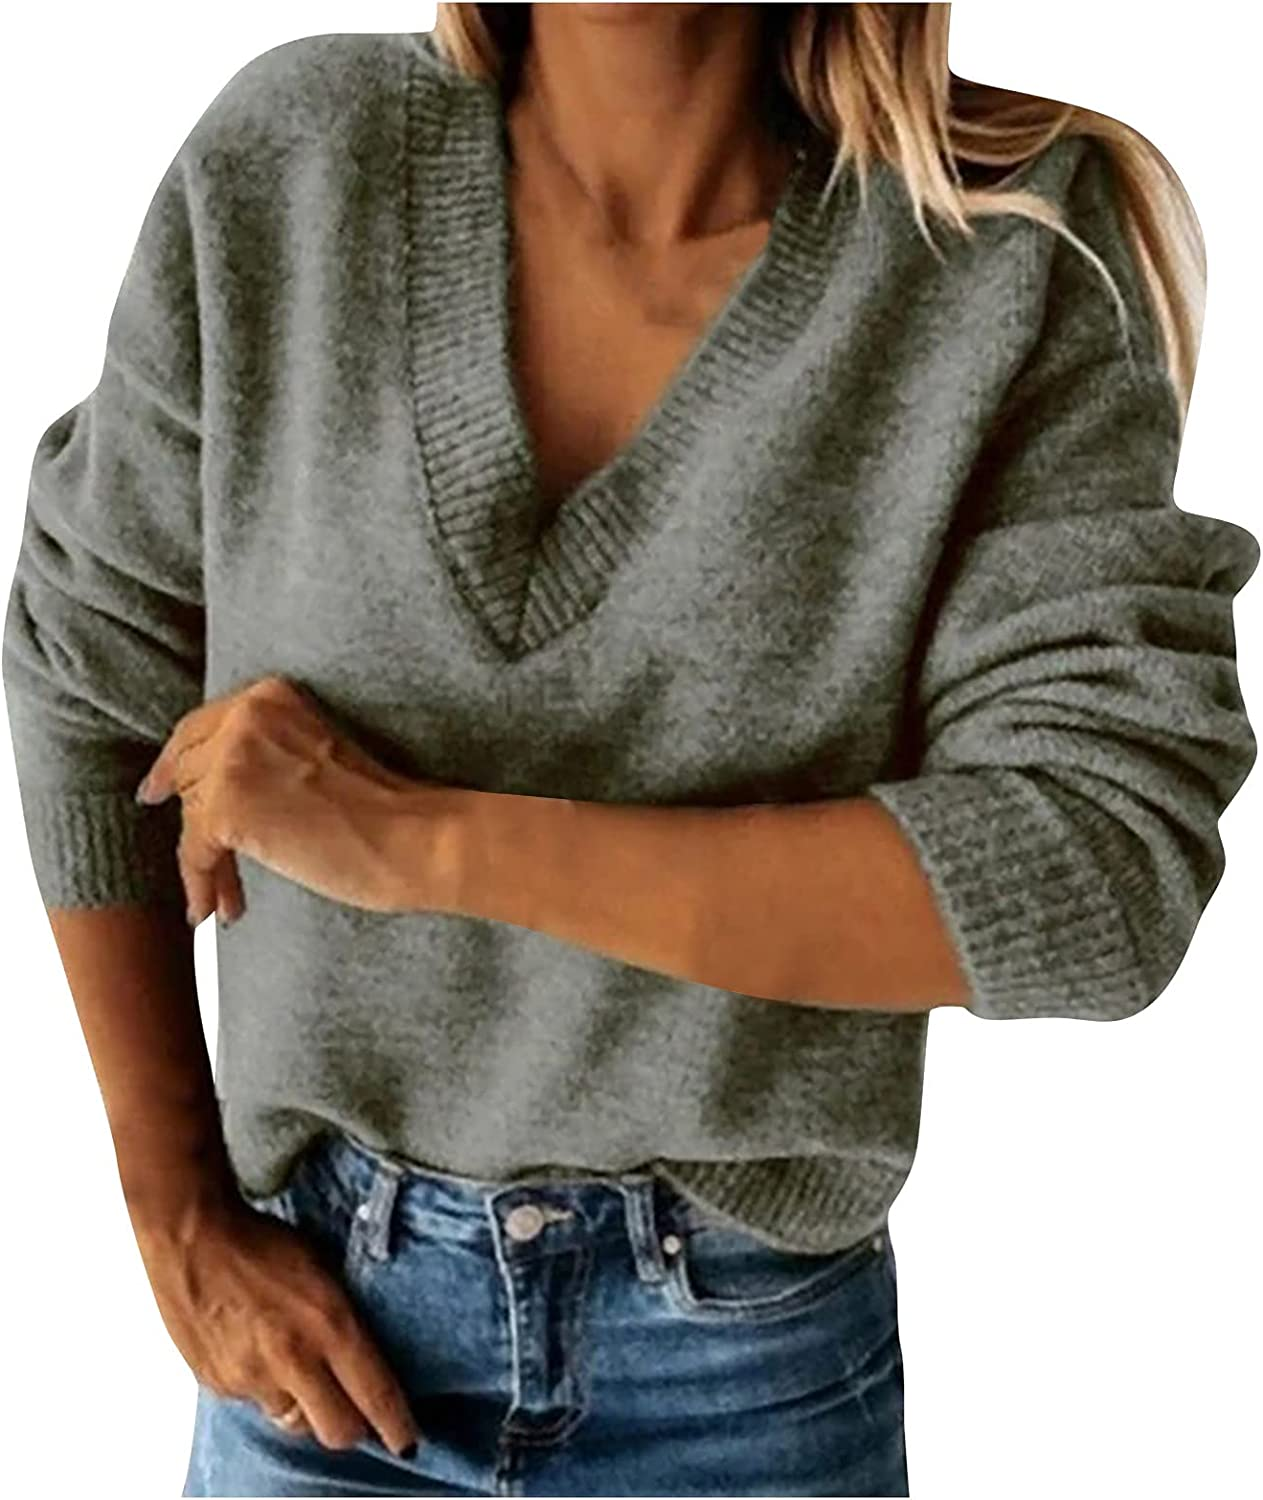 Women's Fashion V-neck Solid Color Sweater Long Sleeve Sheep Fleece Loose Knit Pullover Top